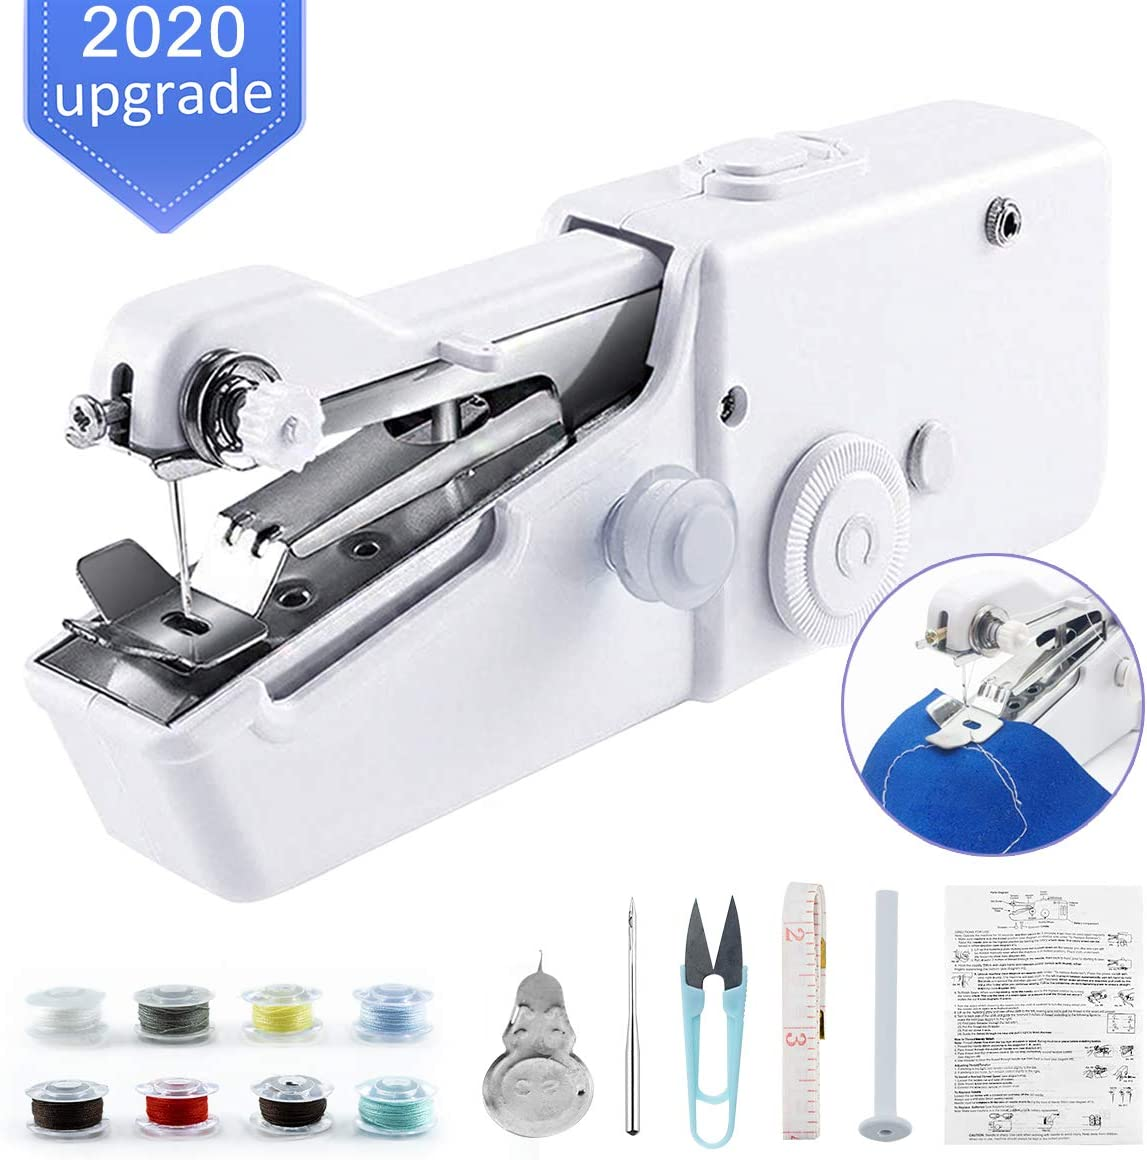 Oscaurt Handheld Sewing Machine for Beginners, Mini Stitching Sewing Machine Hand Electric Cordless Portable Sewer Machine for Kids Clothes, Home, DIY Accessories